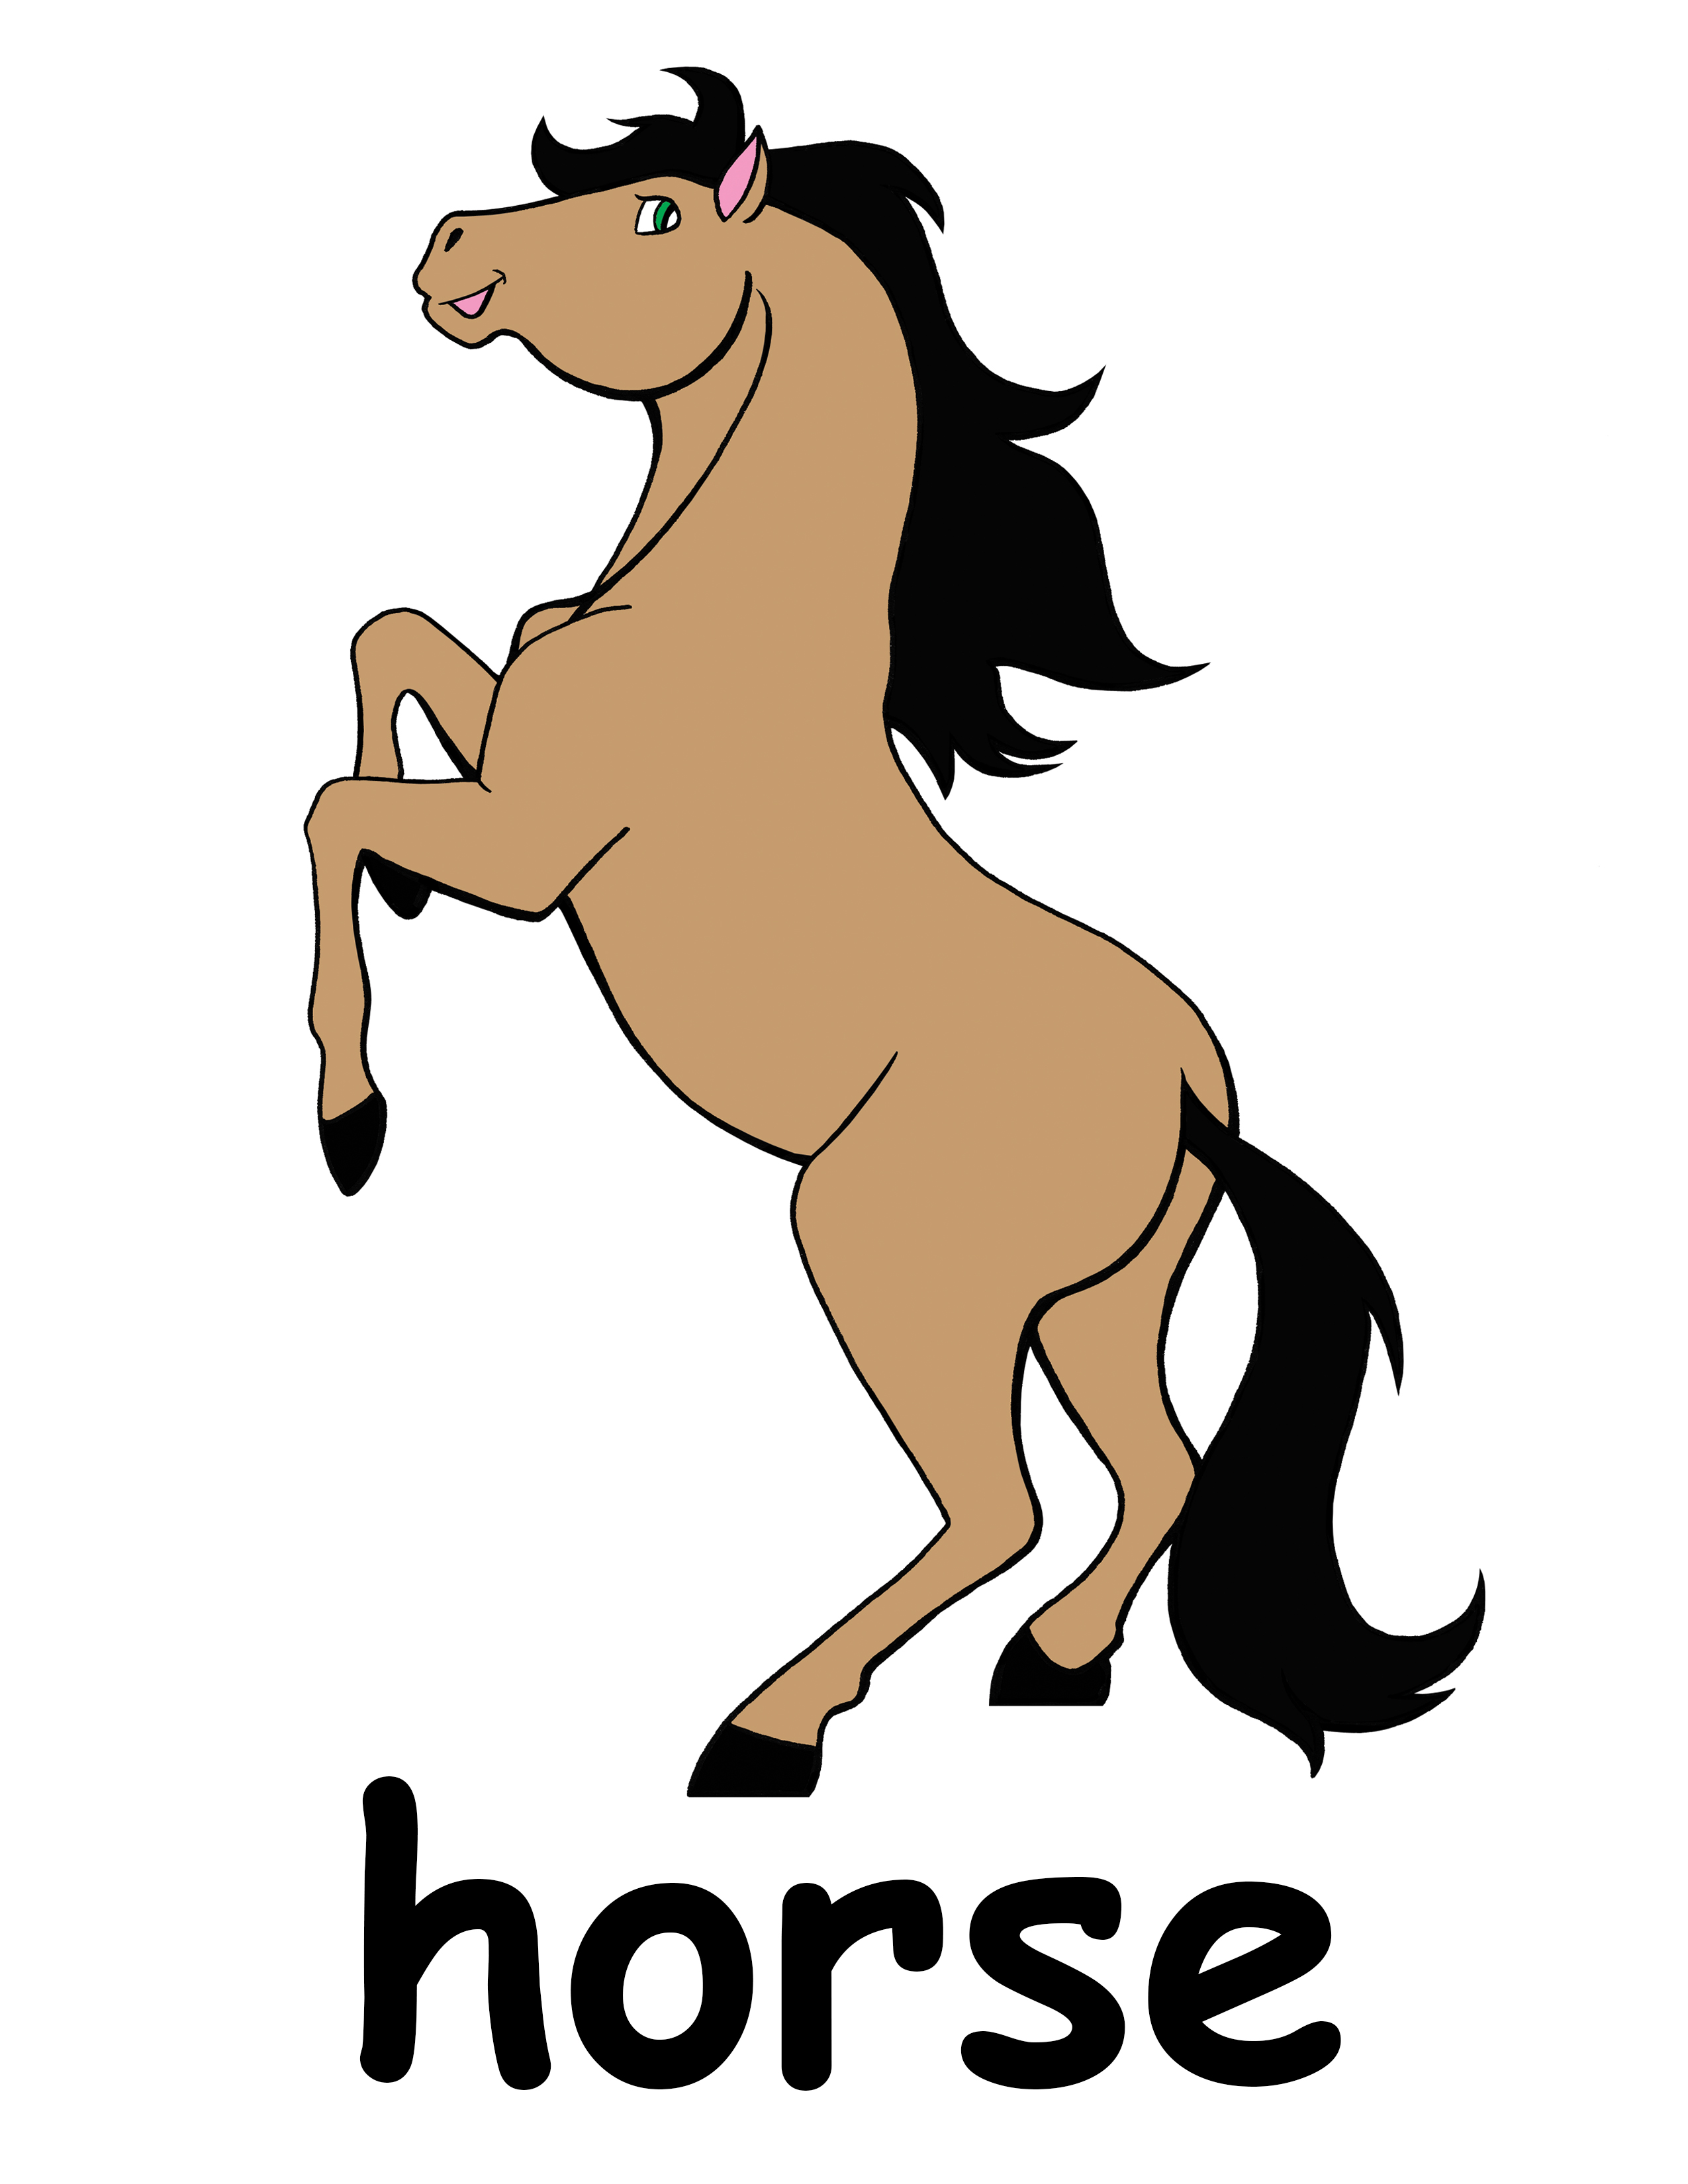 Horse clipart 8.